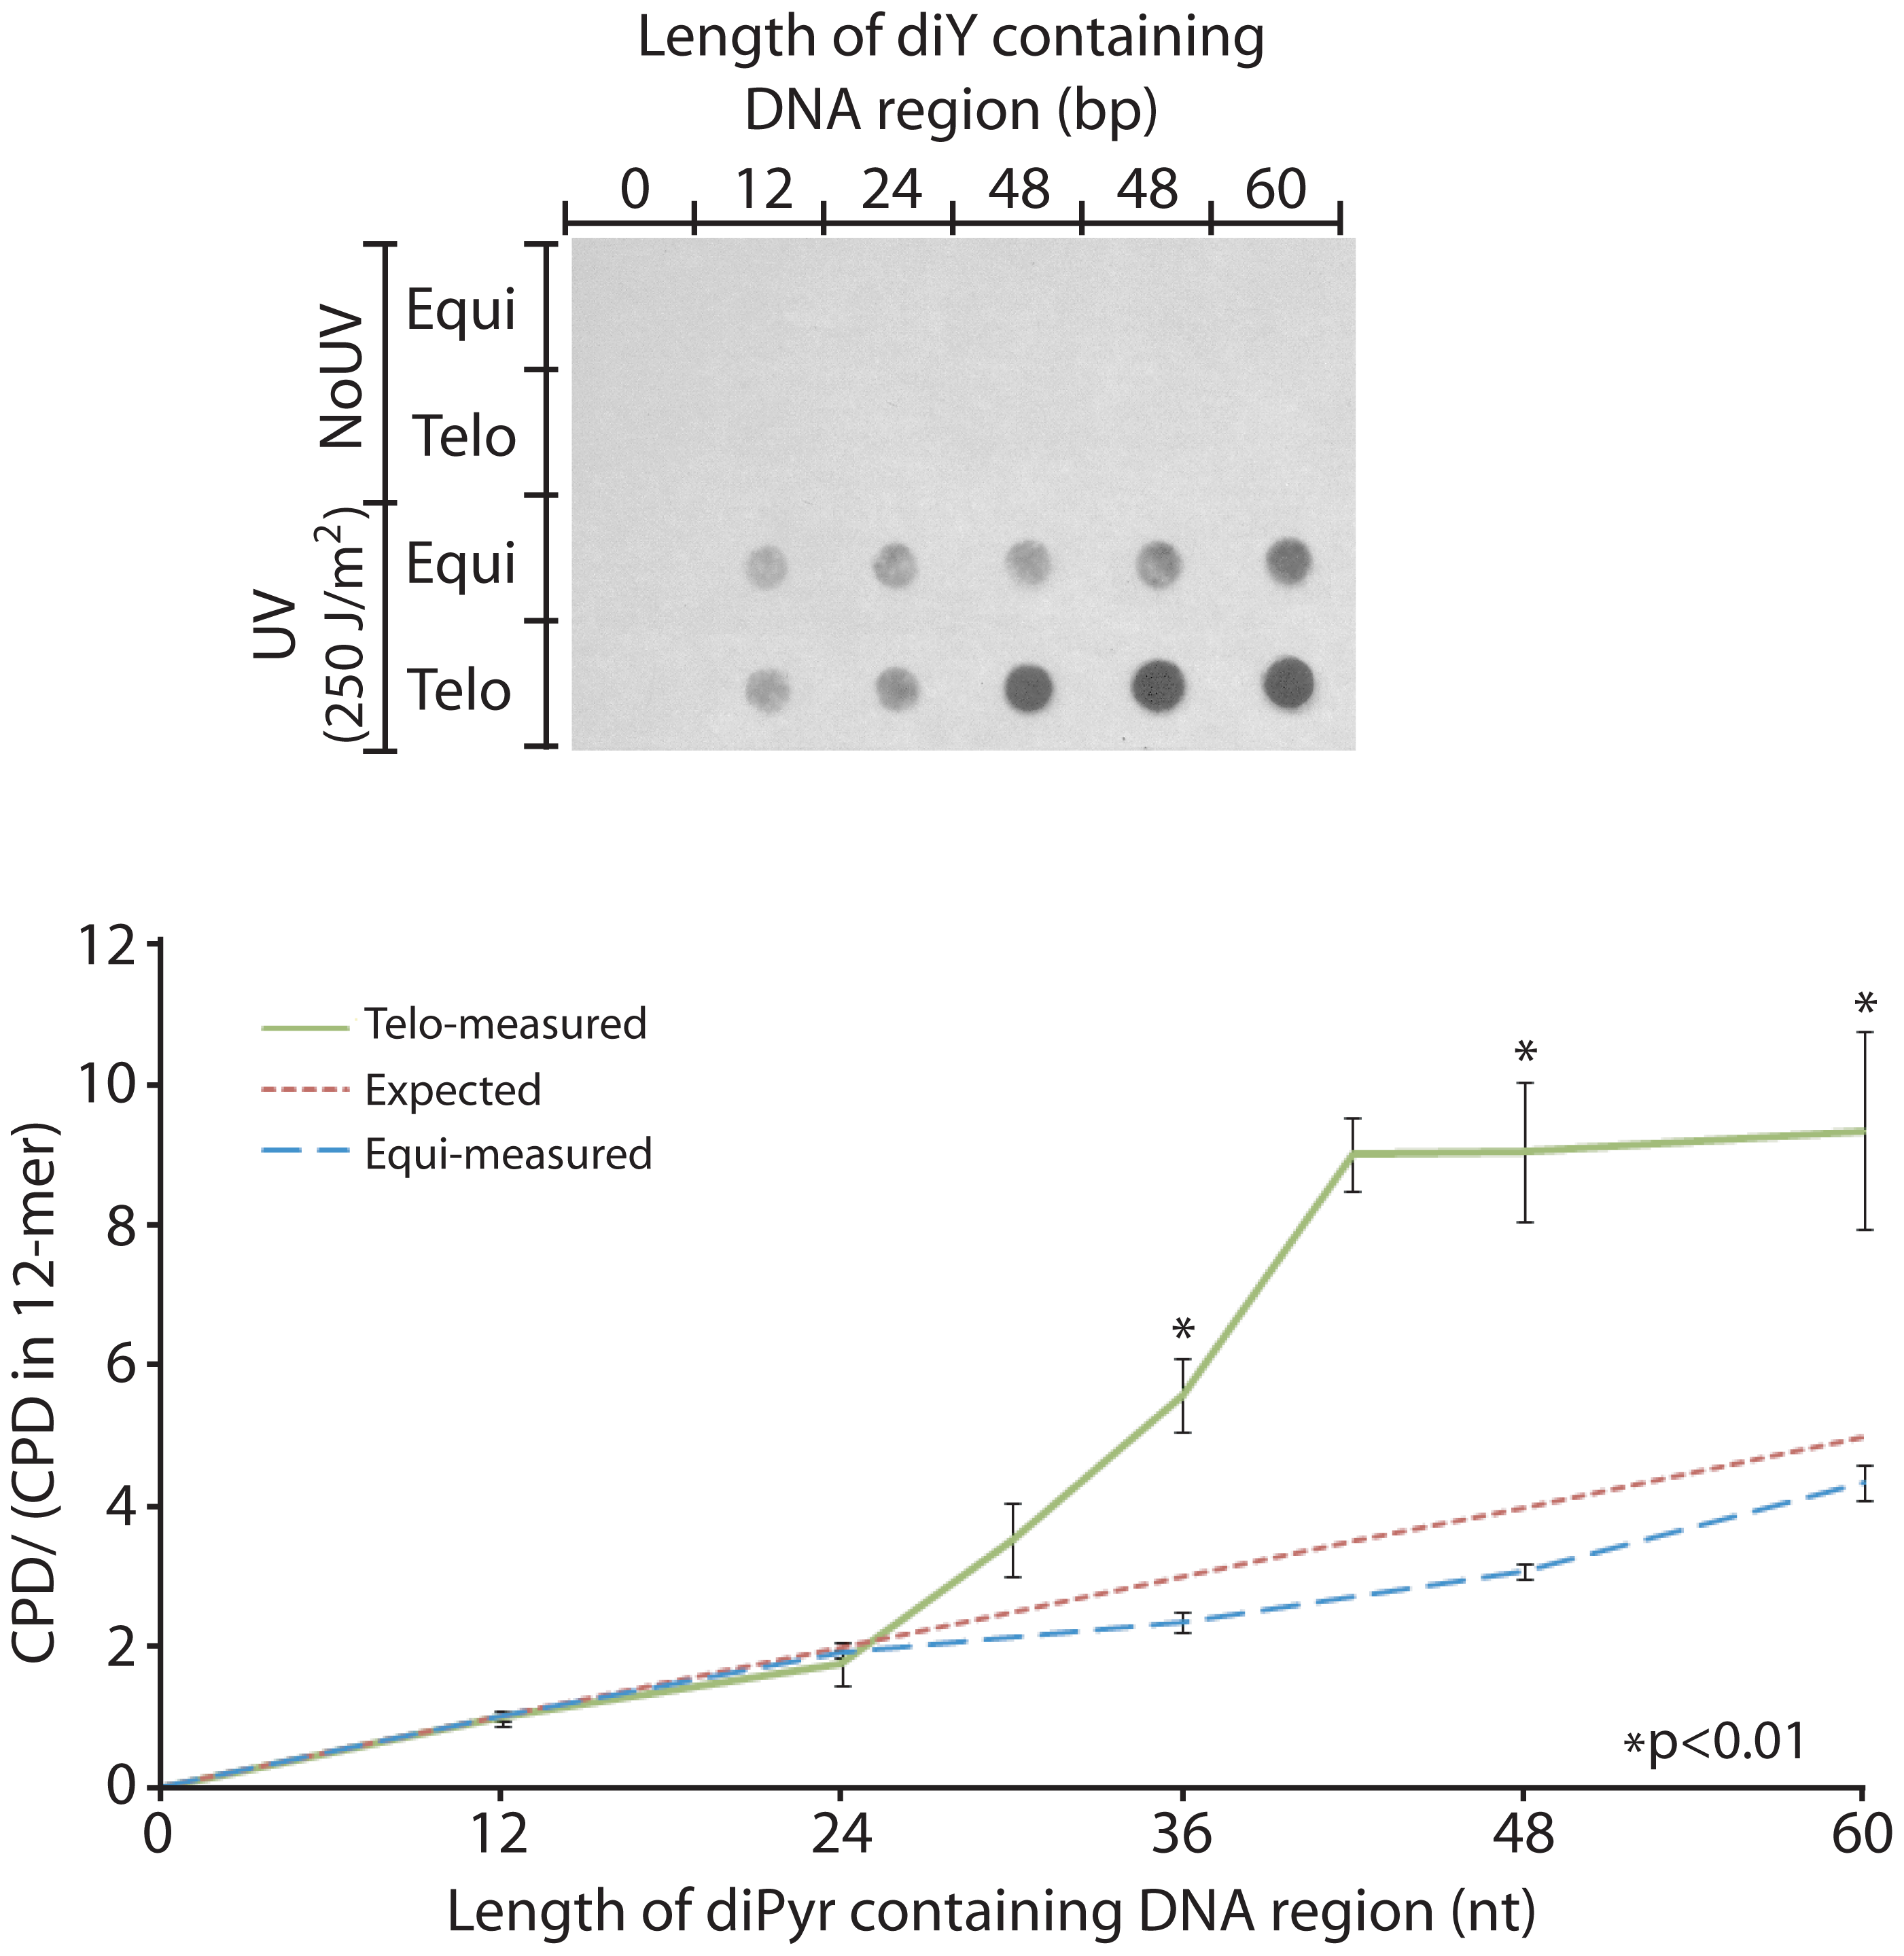 The telomeric sequence acquires UV sensitivity above 4 repeats.